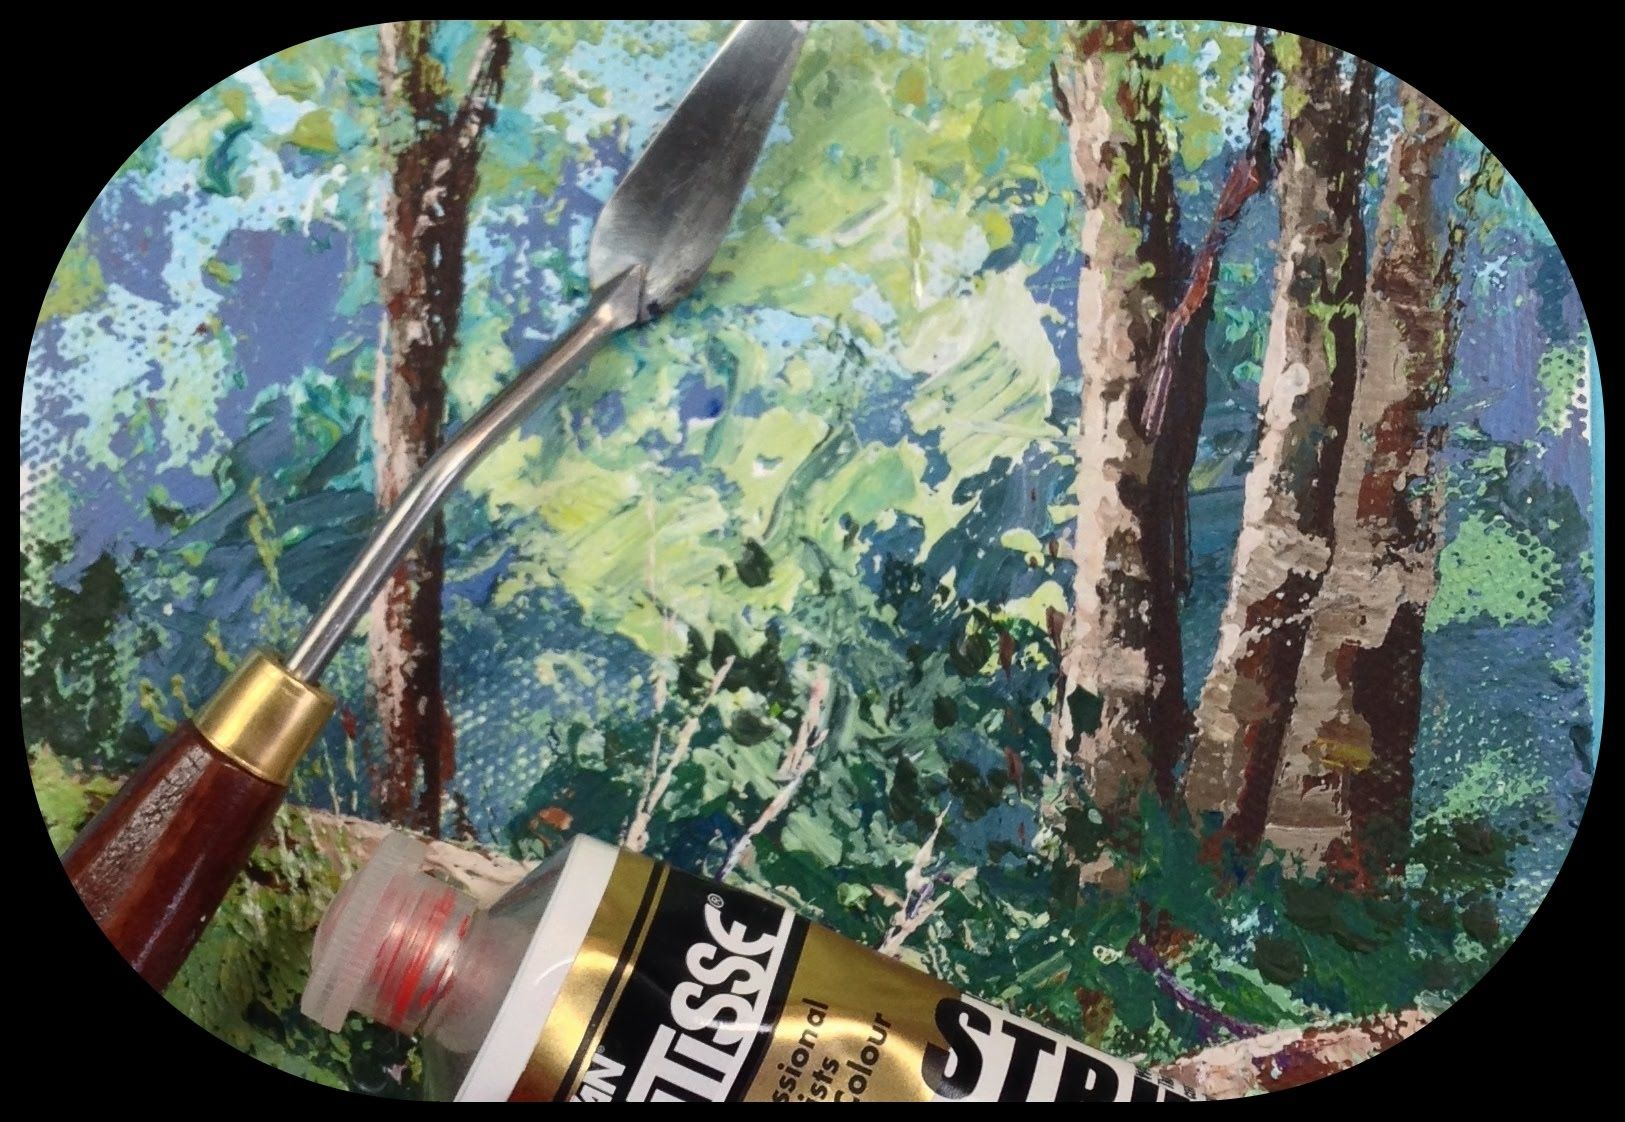 How To Paint Rocks And Trees With A Palette Knife Tips And Tricks Palette Knife Painting Painting Tutorial Pallette Knife Painting